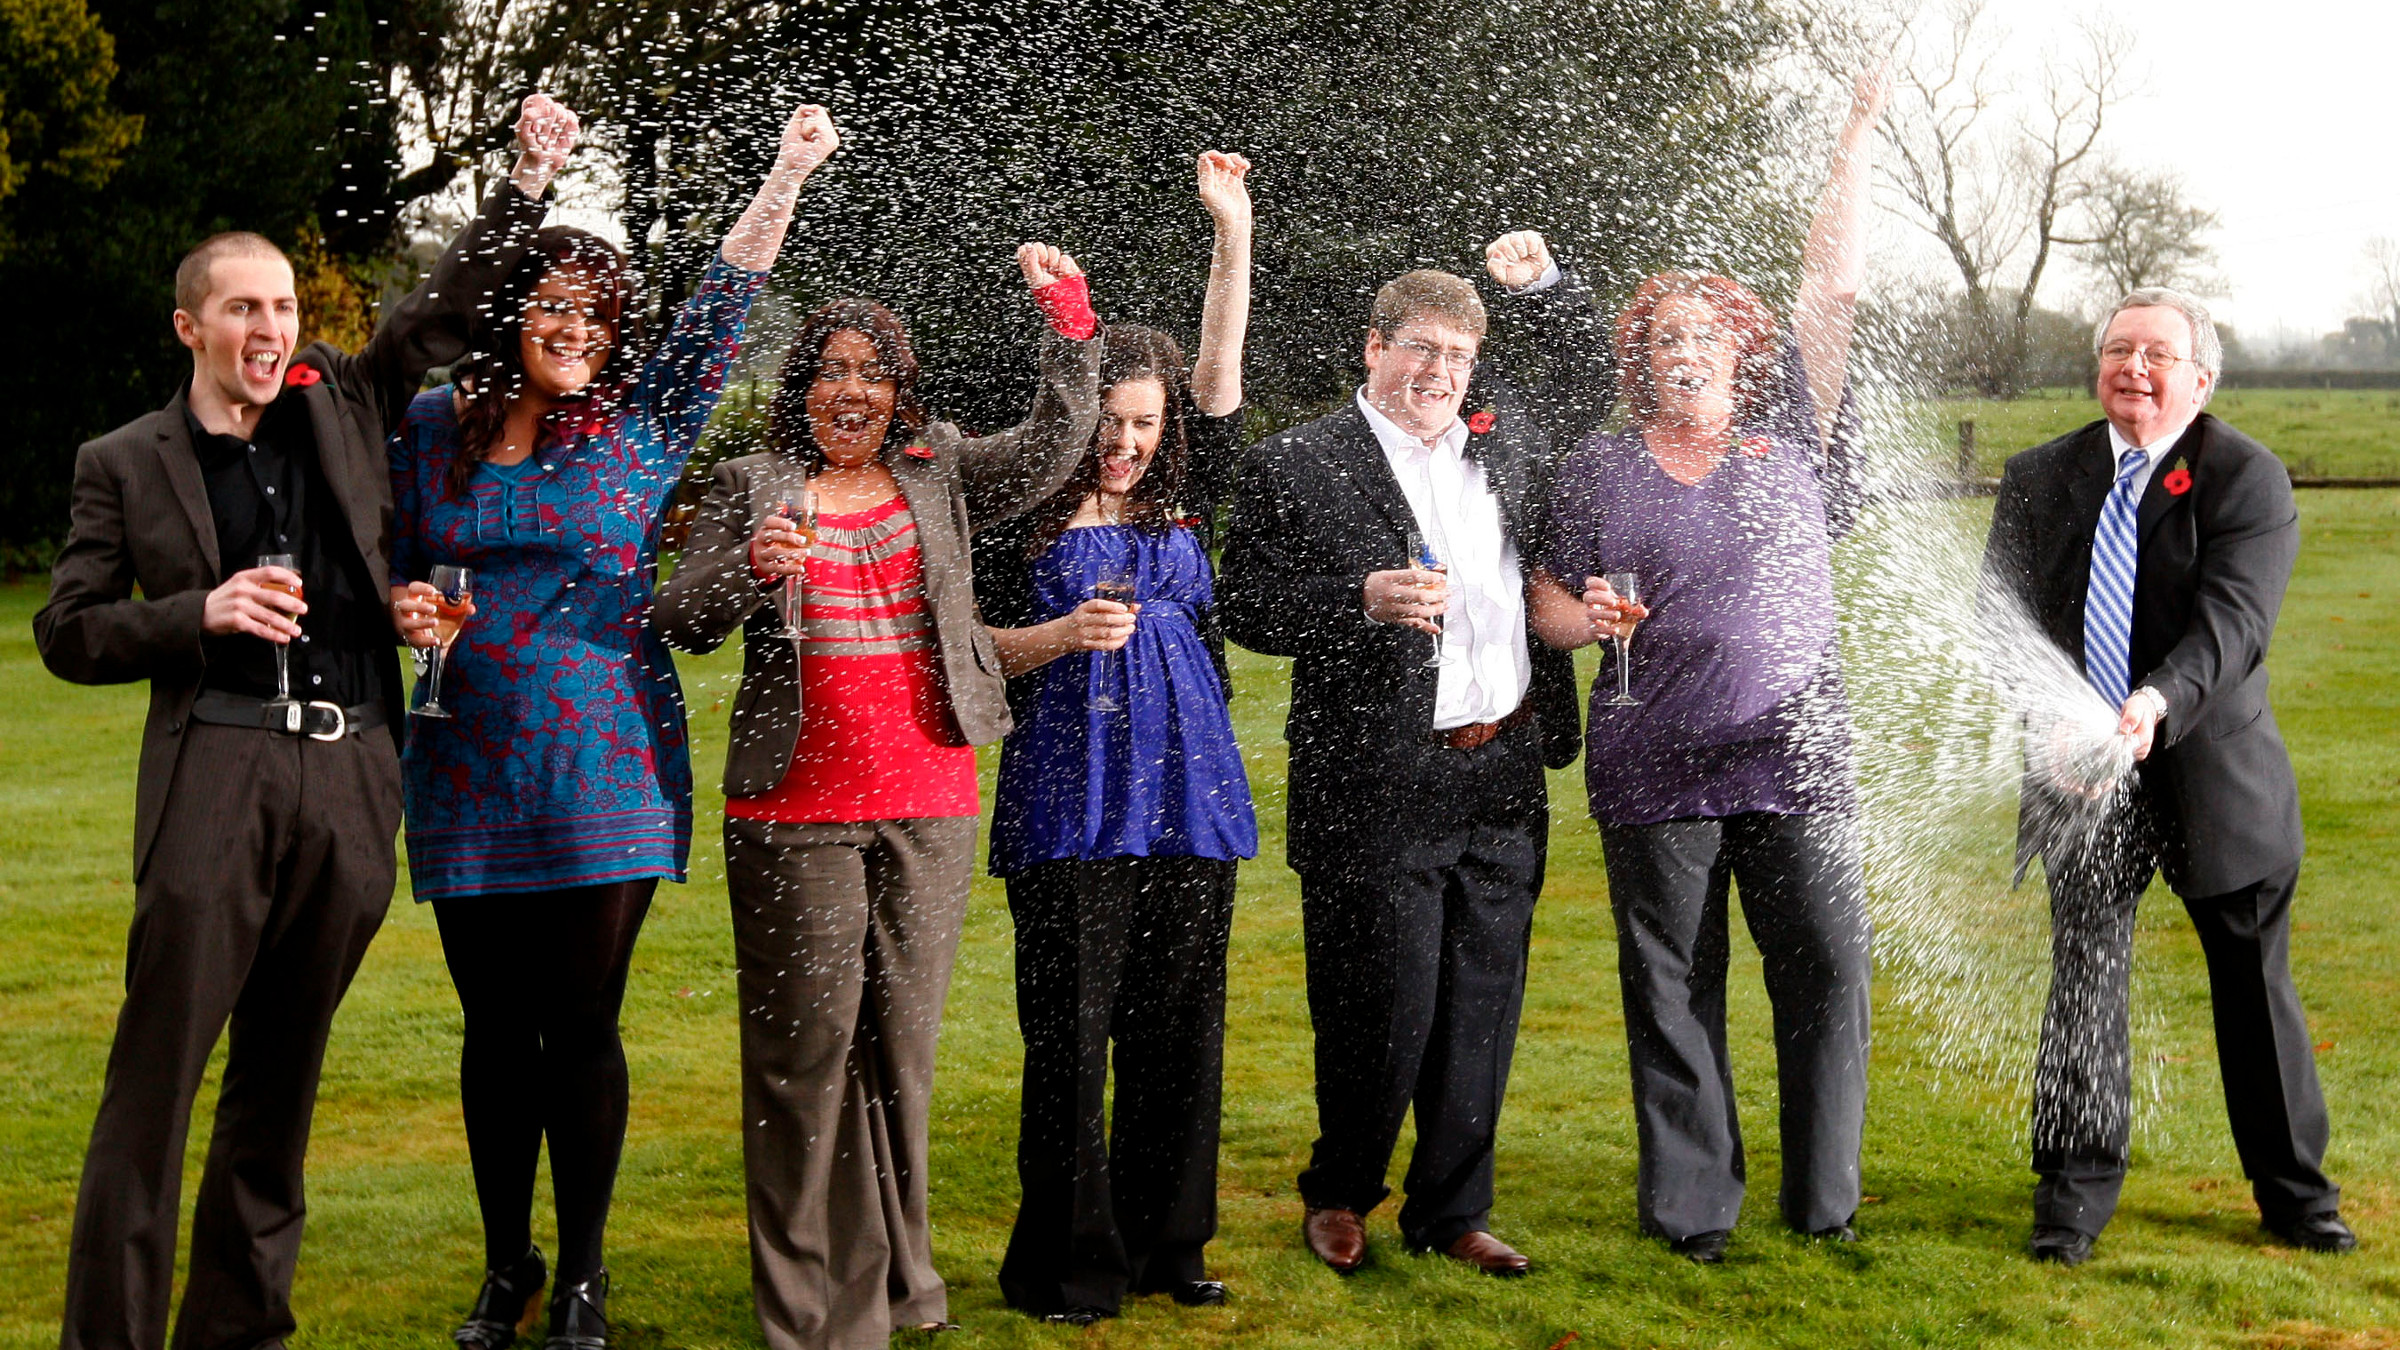 Members of a syndicate of office workers celebrate winning 45.5 million pounds (US$76 million euro50.6 million) after winning a share of the UK's largest ever lottery prize in the Euromillions lottery at the village of Thornton Hough near Liverpool, England, Tuesday Nov. 10, 2009. The winners who work for Hewlett Packard are from the right, John Walsh, Donna Rhodes, James Bennett, Alex Parry, Ceri Scullion, Emma Cartwright and Sean Connor.